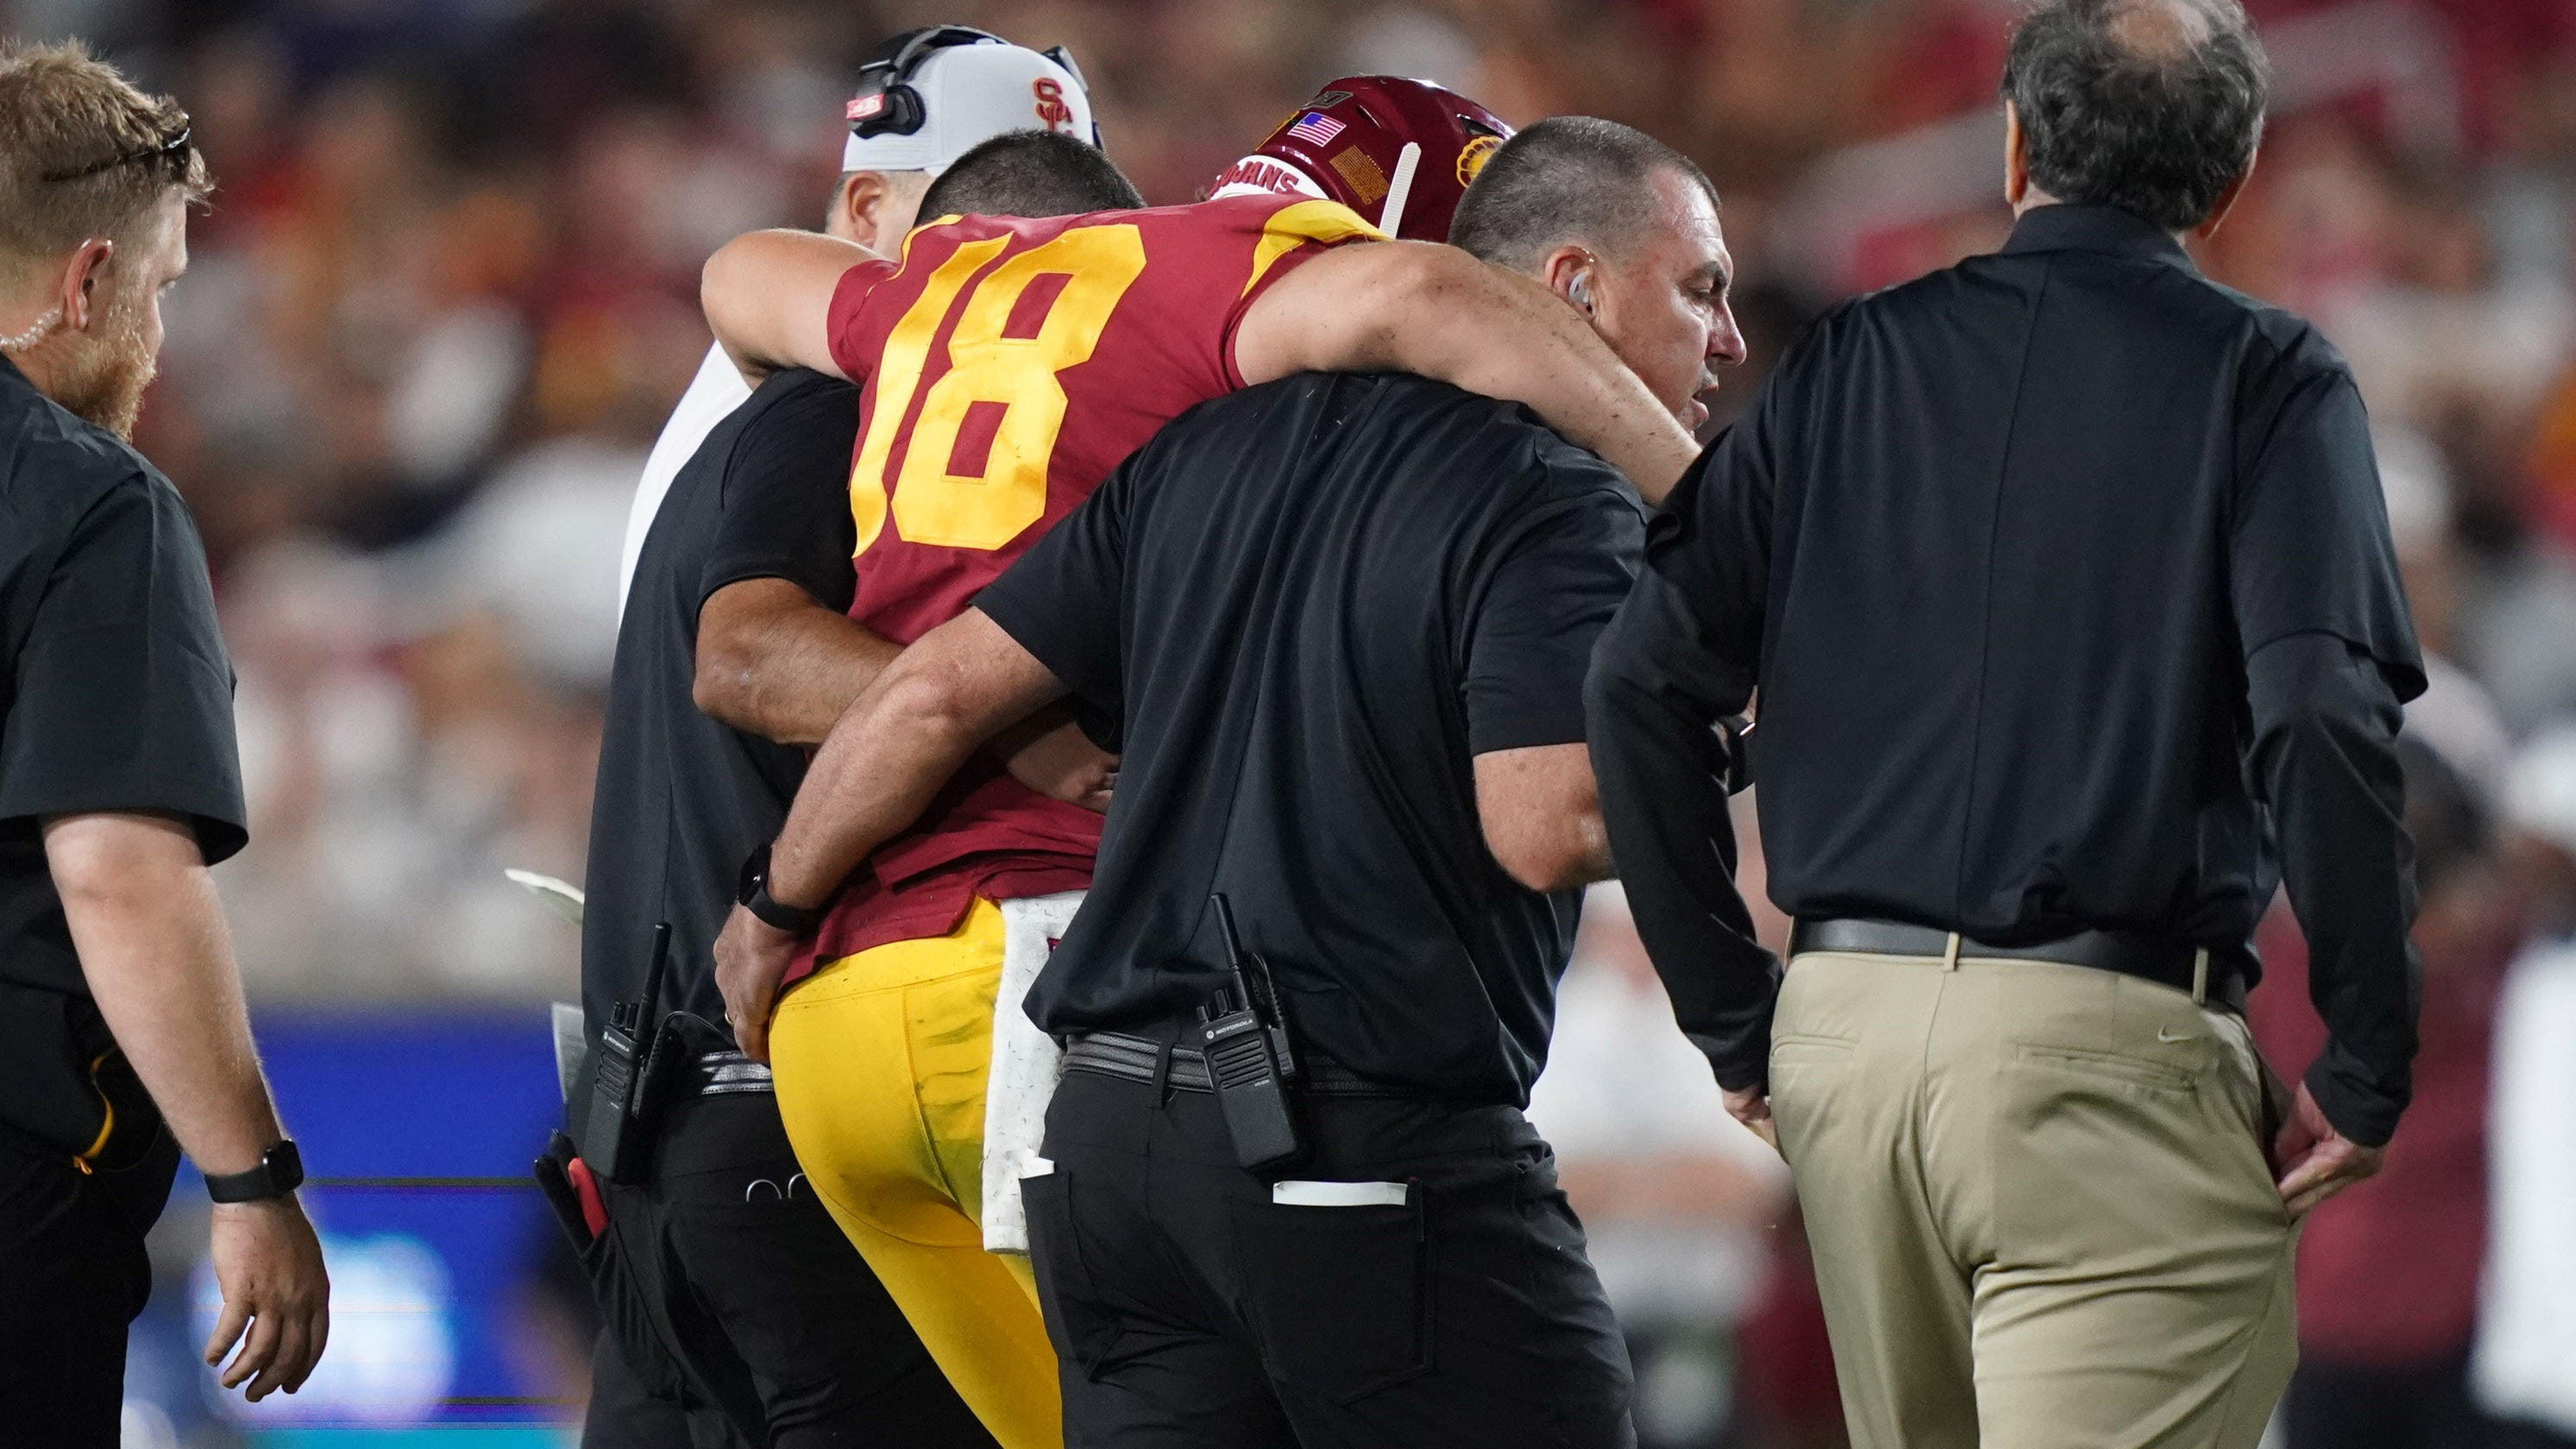 USC starting quarterback JT Daniels out for the season with knee injury